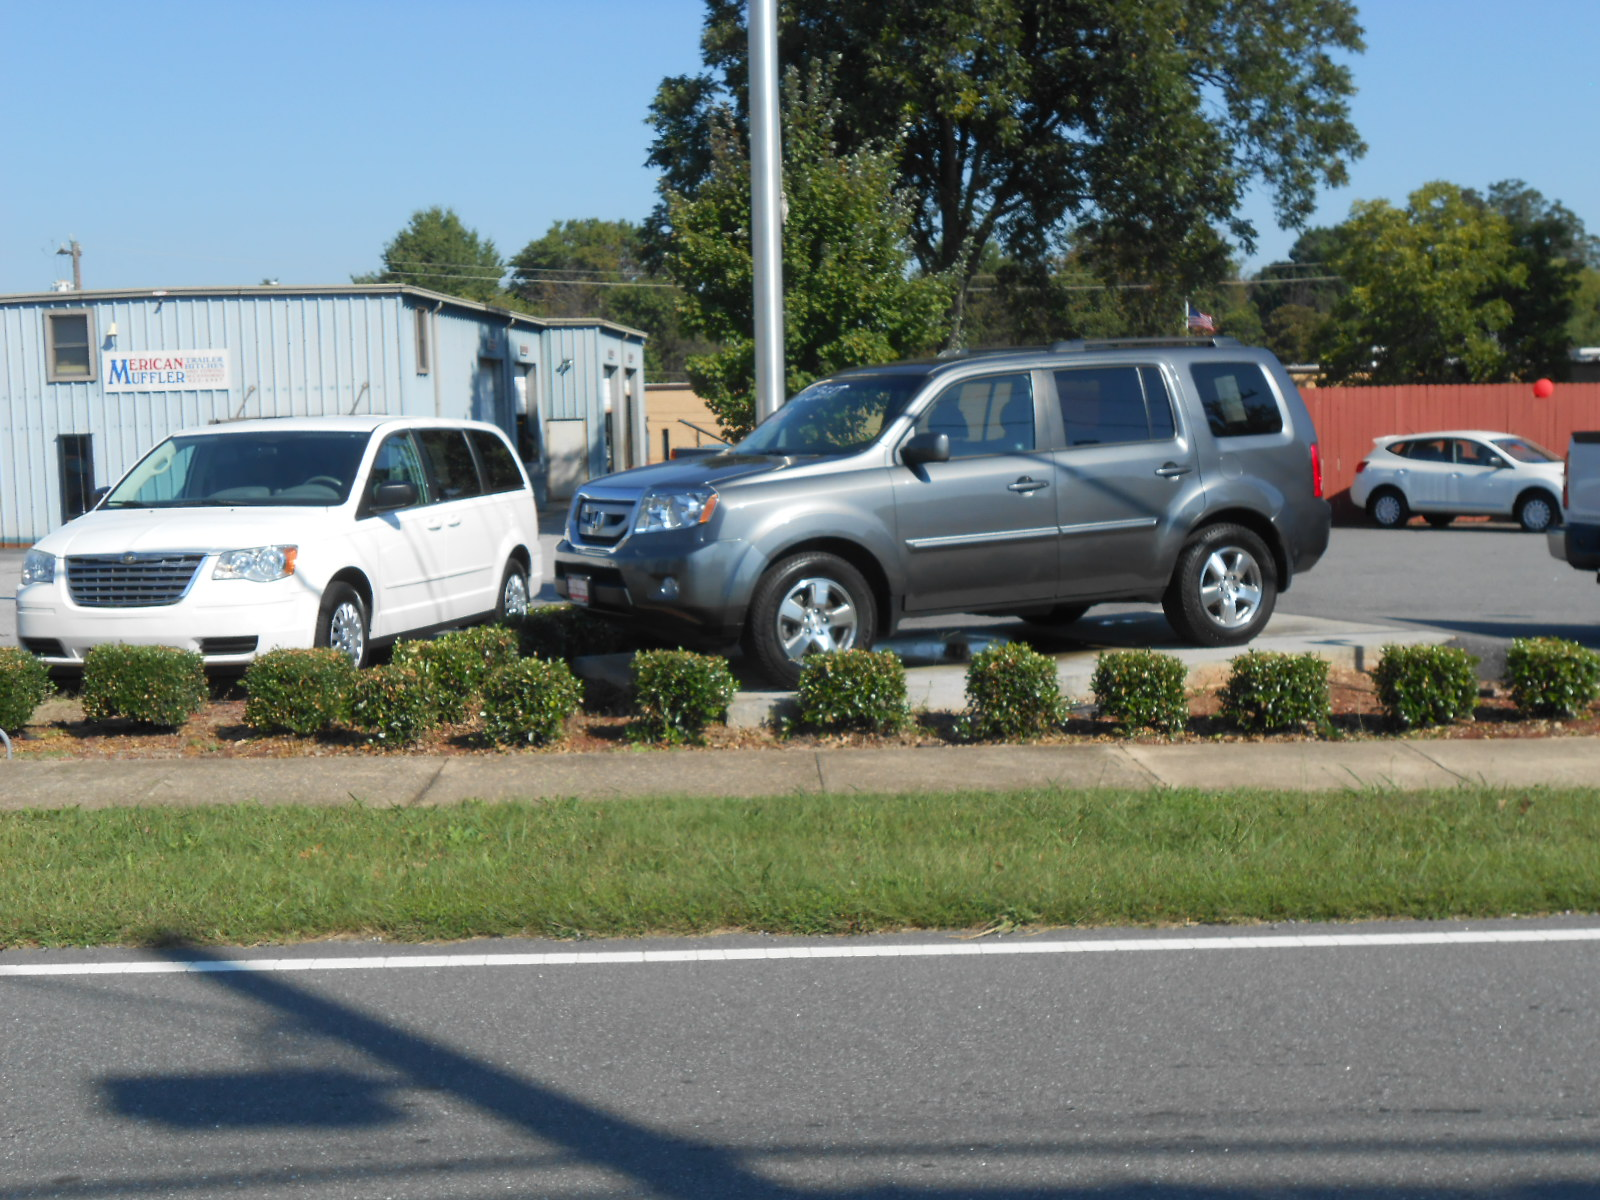 National Auto Sales 1 At 1210 1st Ave Sw Hickory Nc On Fave